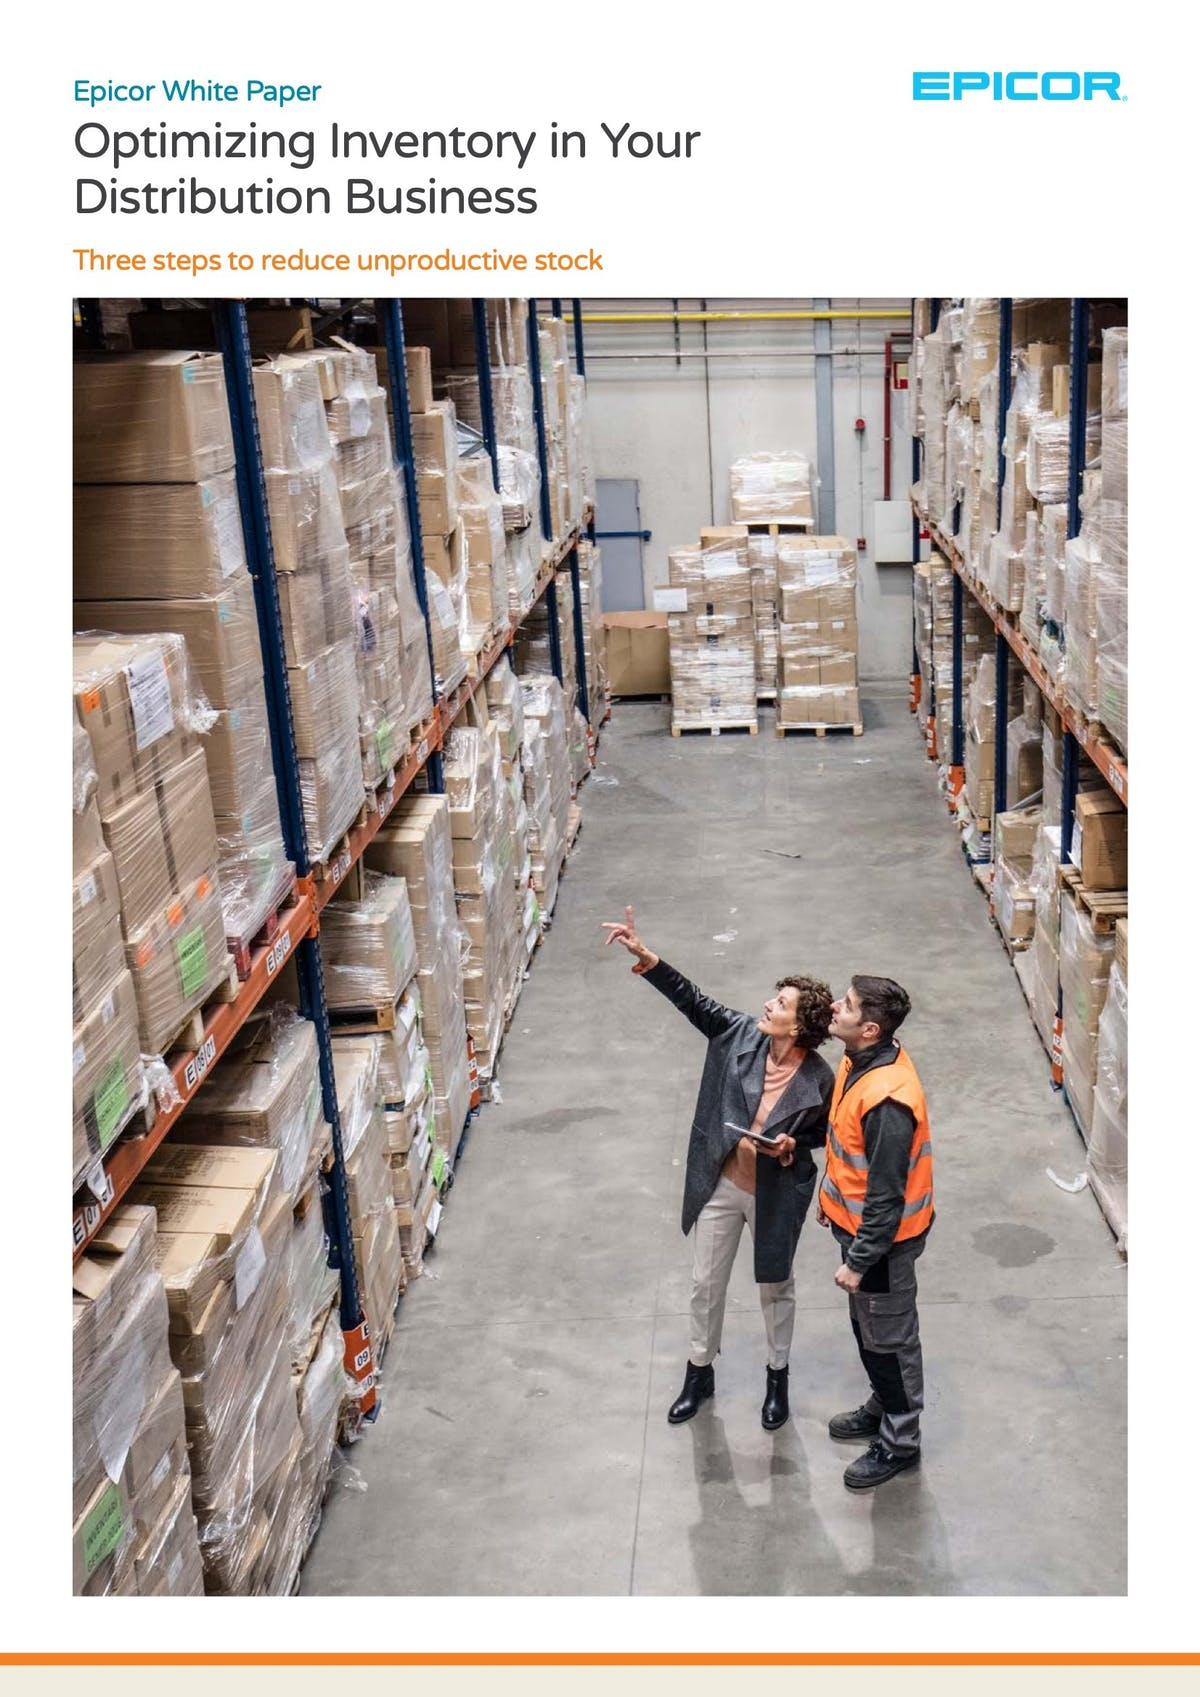 Epicor Eclipse White Paper - Optimizing Inventory in Your Distribution Business